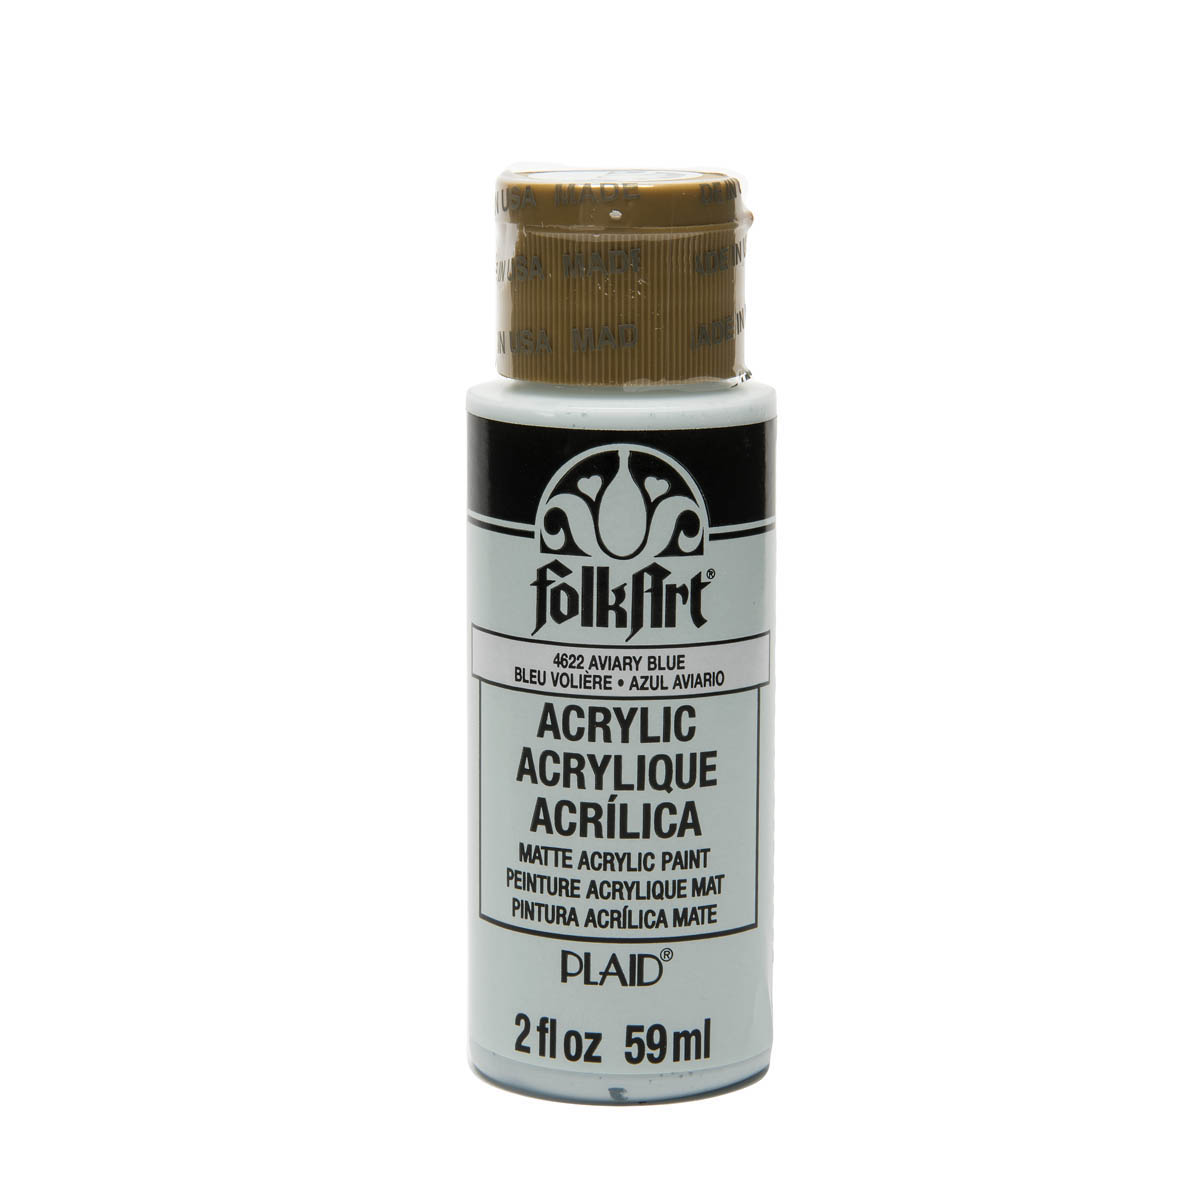 FolkArt ® Acrylic Colors - Aviary Blue, 2 oz. - 4622